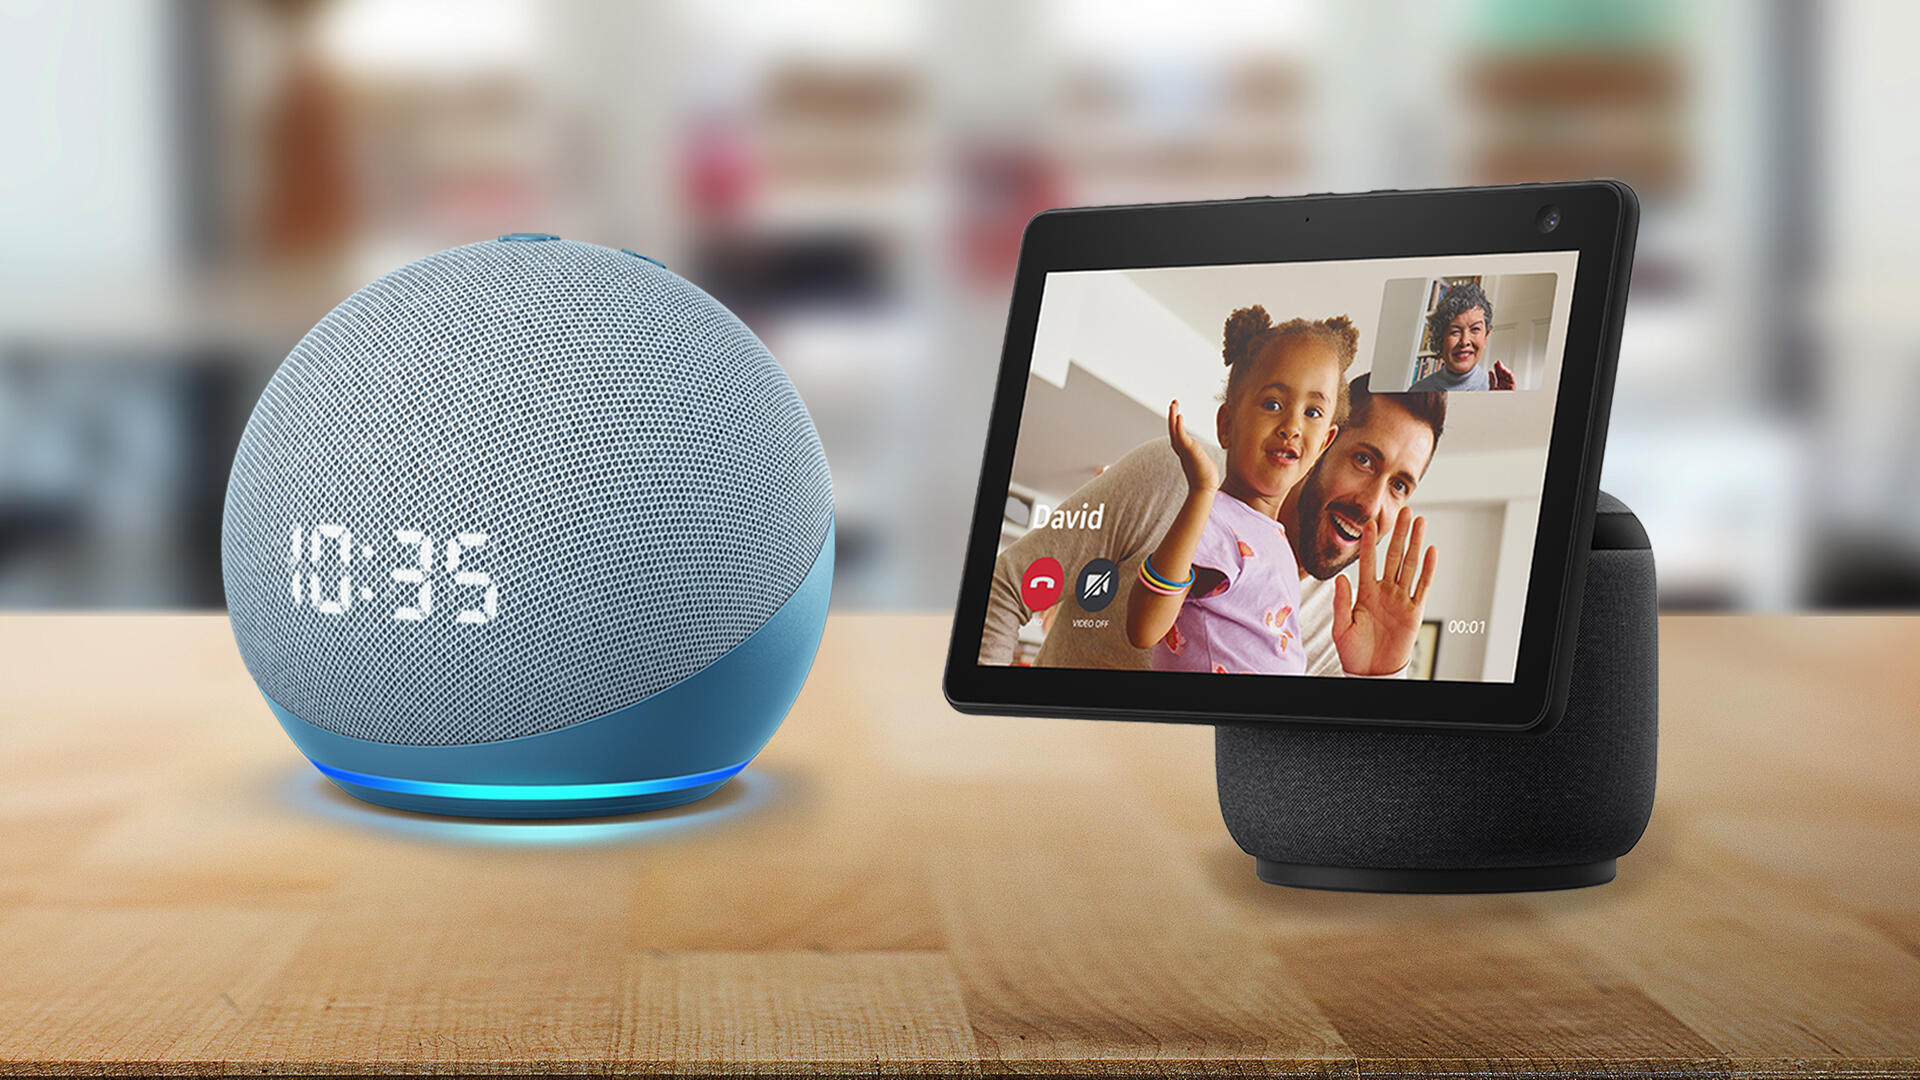 Video: Amazon's newest Echo can follow you